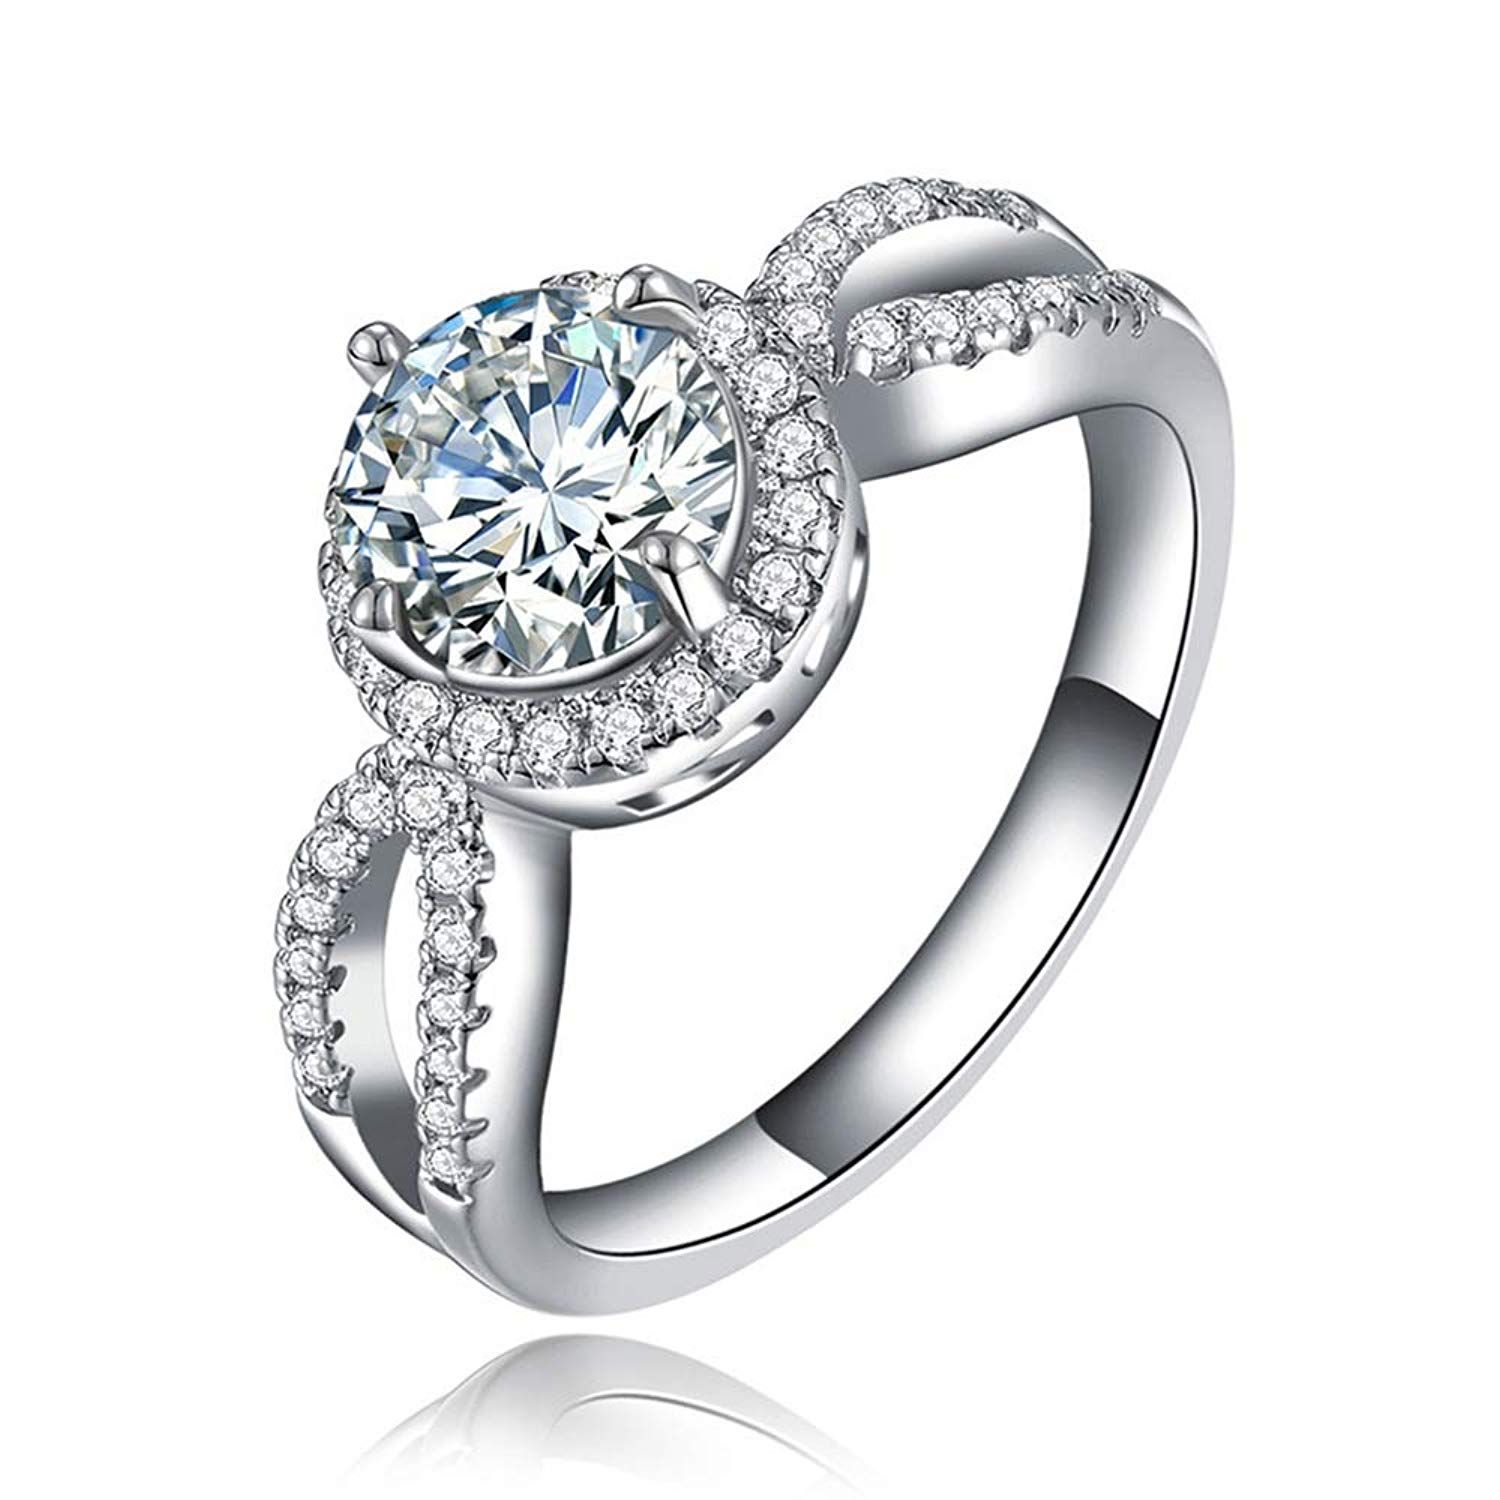 Women's Fashion Ring Silver Ring Best Promise Rings for